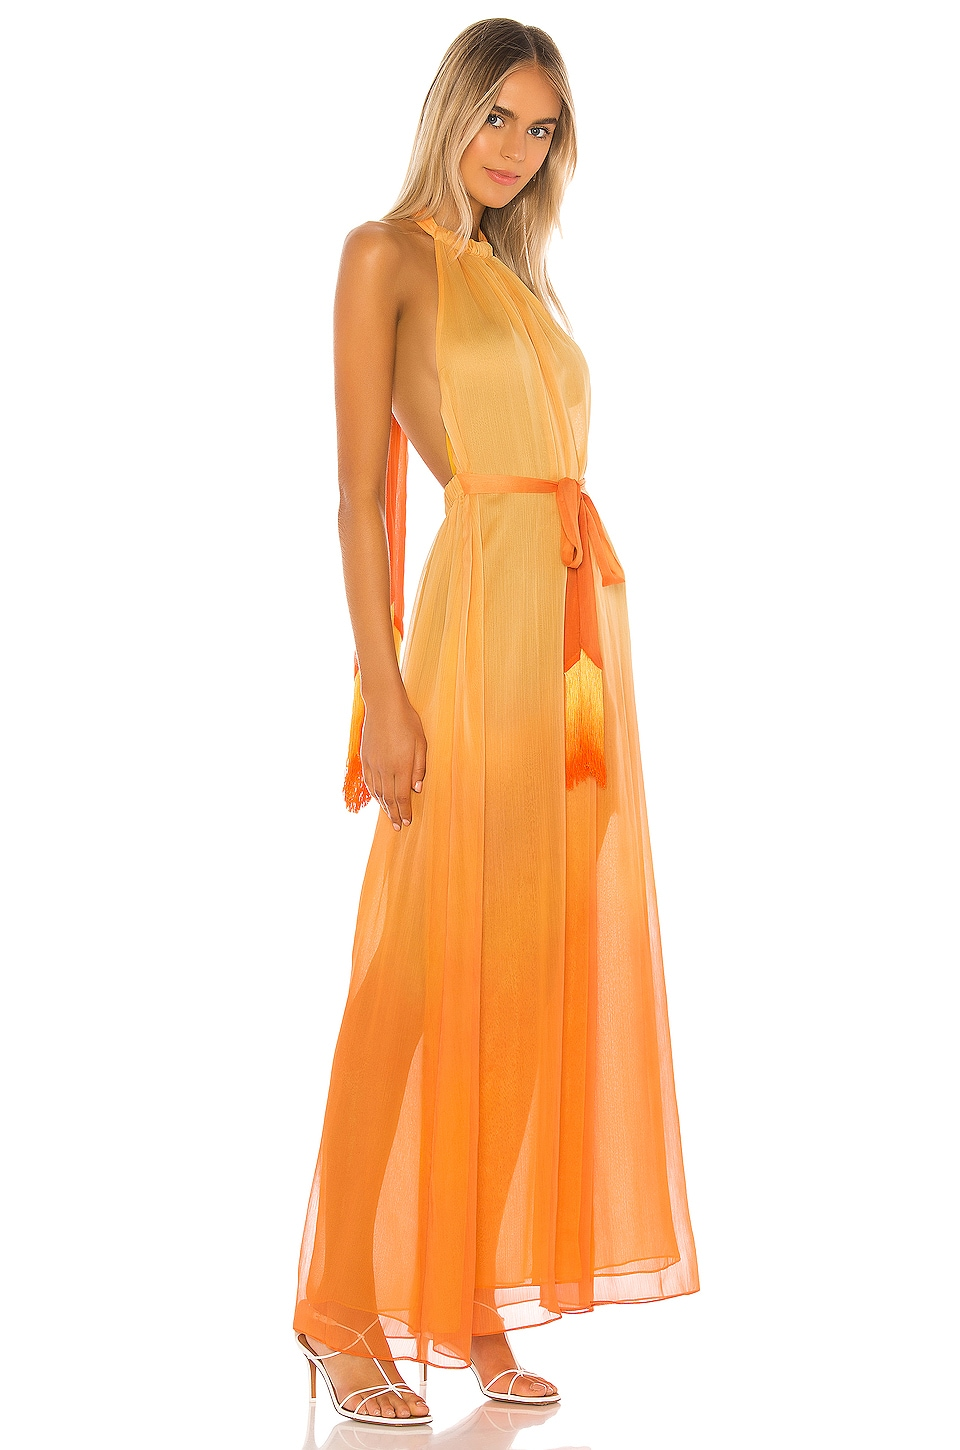 Ombre Halter Maxi Dress, view 3, click to view large image.